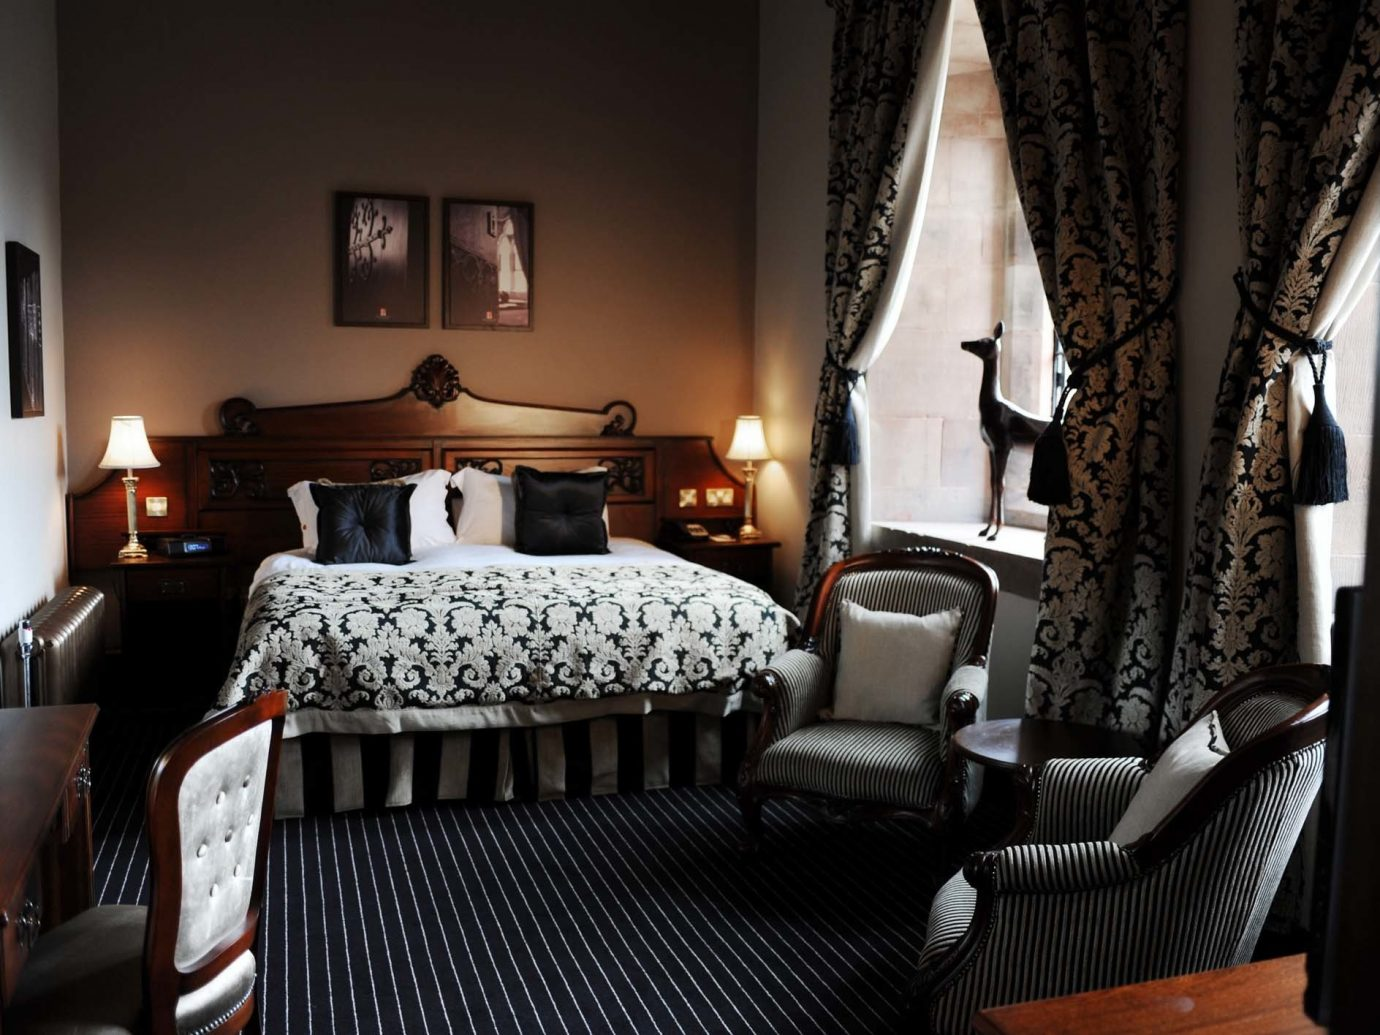 Hotels wall indoor room chair property interior design home Bedroom Suite living room estate furniture cottage hotel decorated